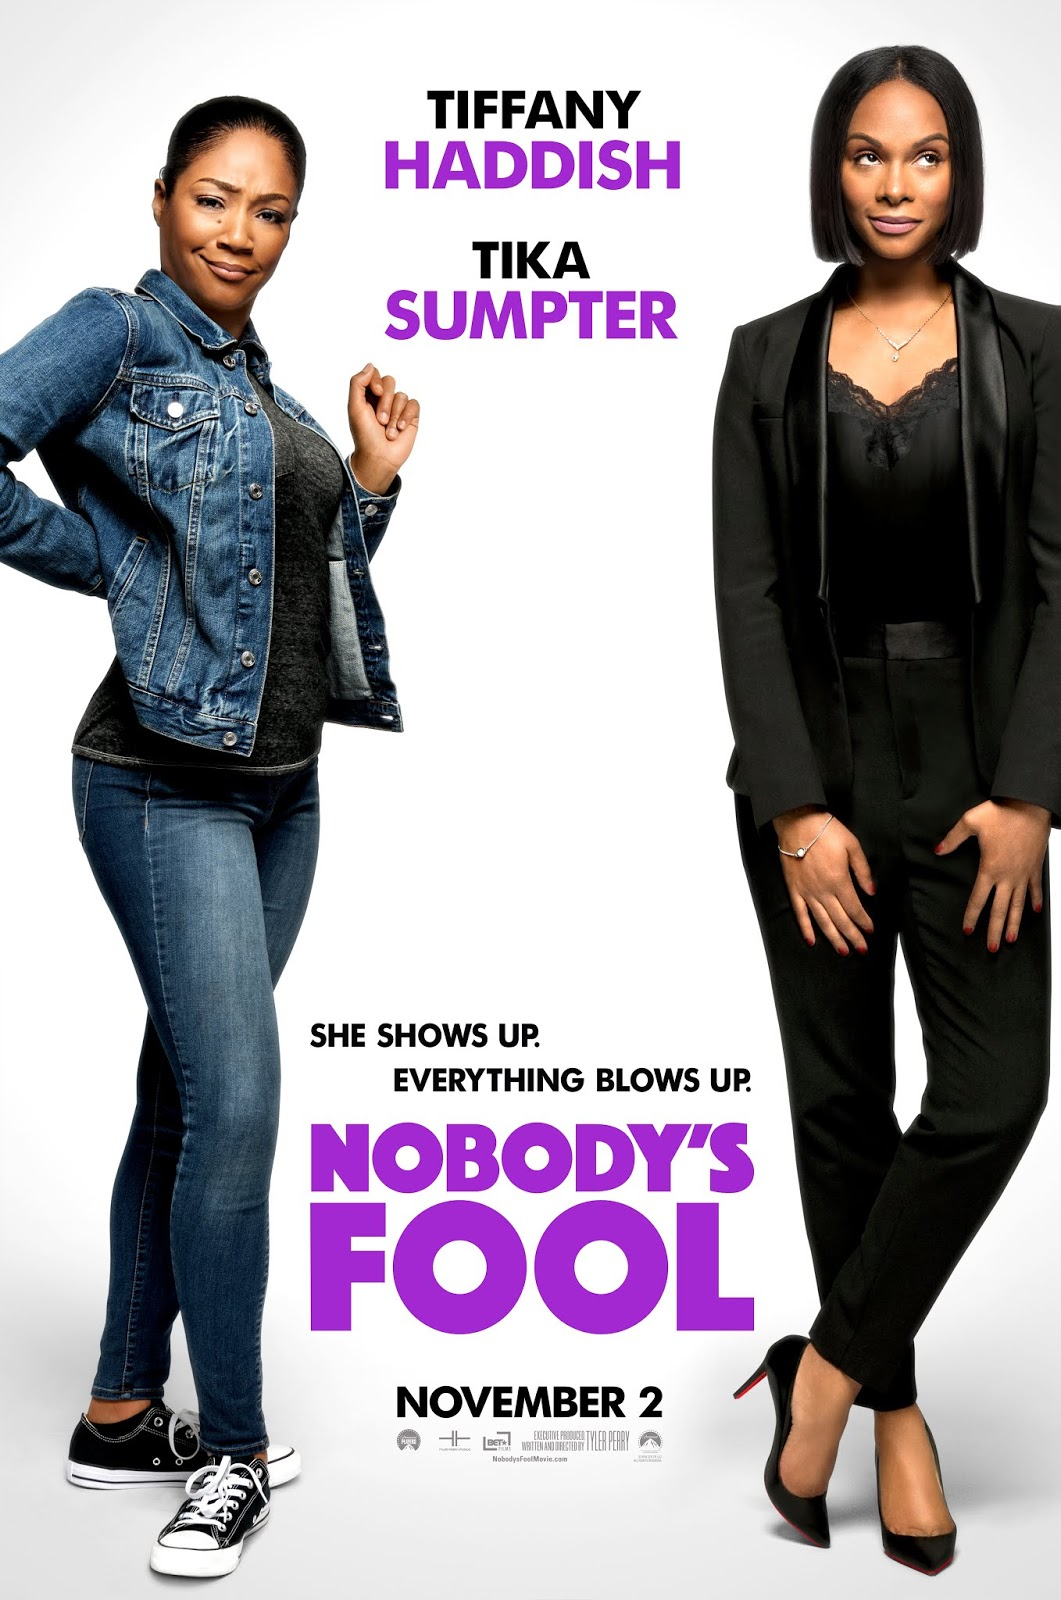 57299e49916 Trying to get back on her feet, wild child Tanya (Tiffany Haddish) looks to  her buttoned-up, by the book sister Danica (Tika Sumpter) to help her get  back ...